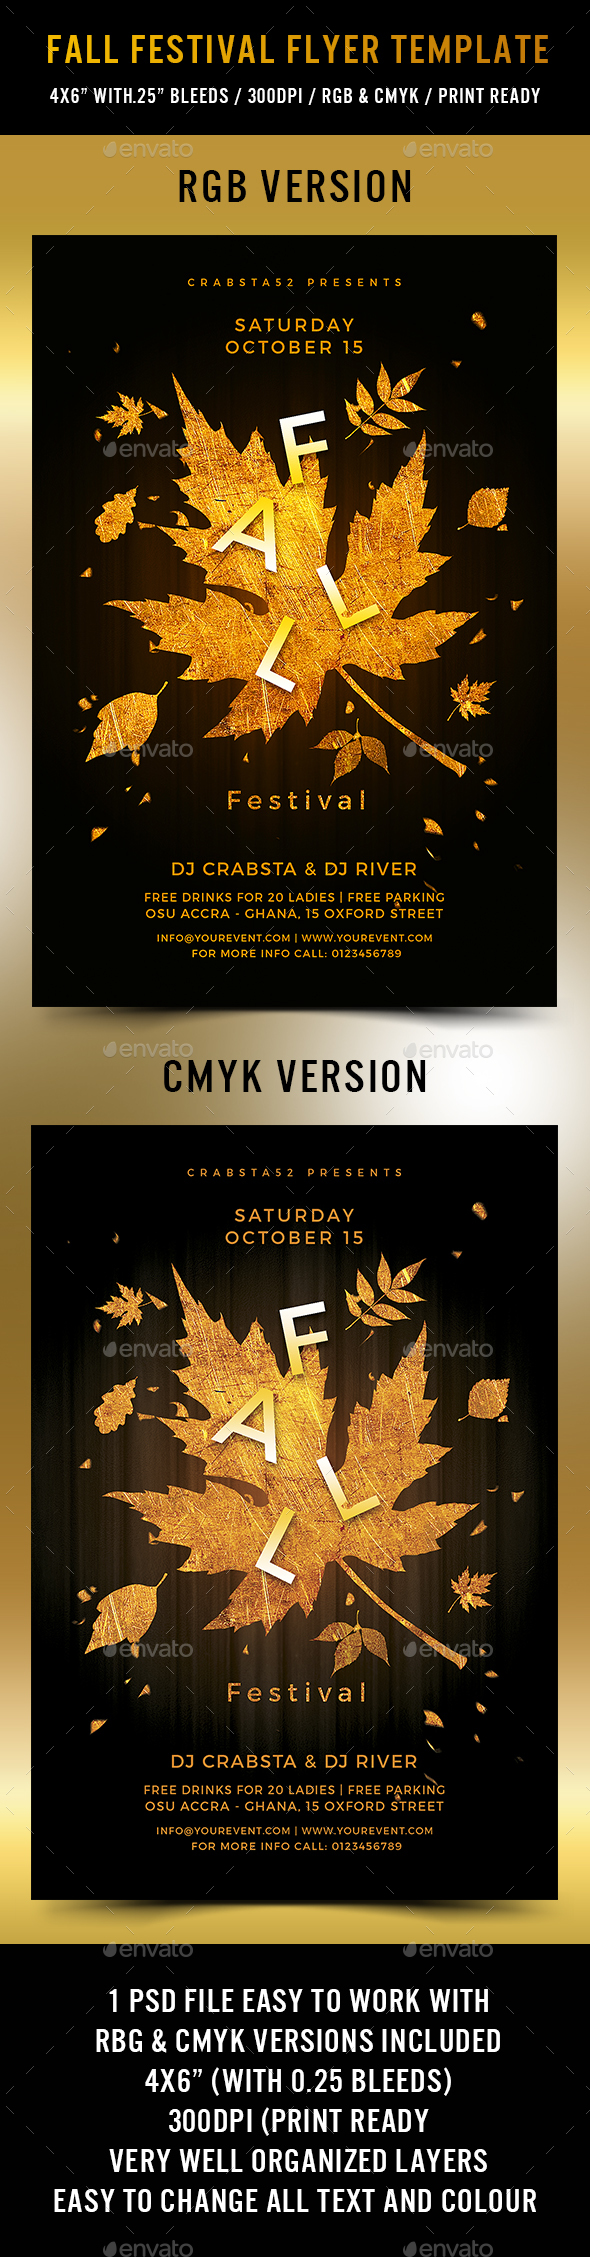 fall festival flyer template by crabsta52 graphicriver. Black Bedroom Furniture Sets. Home Design Ideas